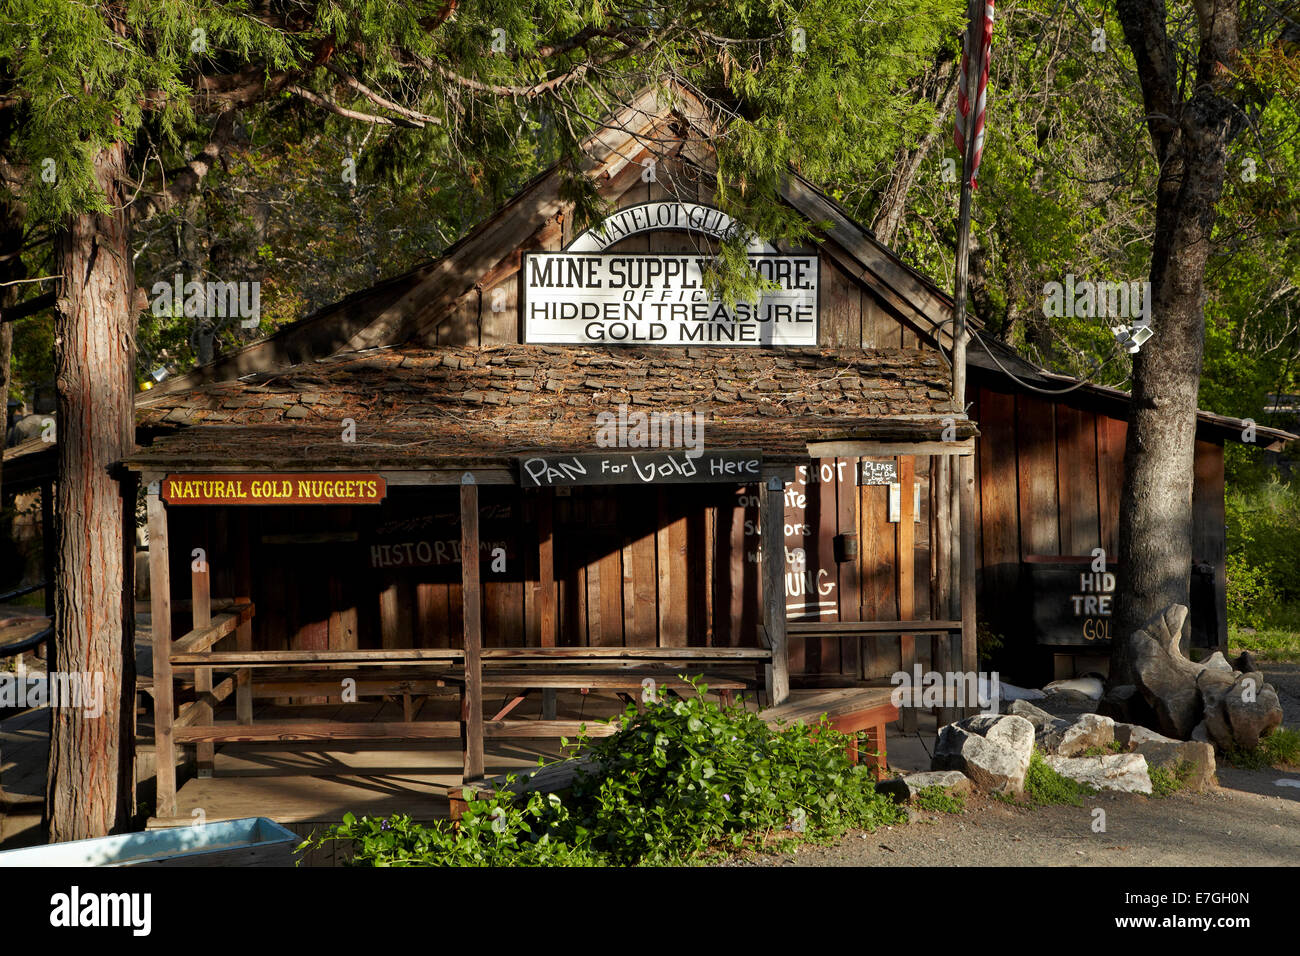 Matelot Miners Supply/Hidden Treasure Gold Mine, Columbia State Historic Park, Columbia, Tuolumne County, Sierra - Stock Image